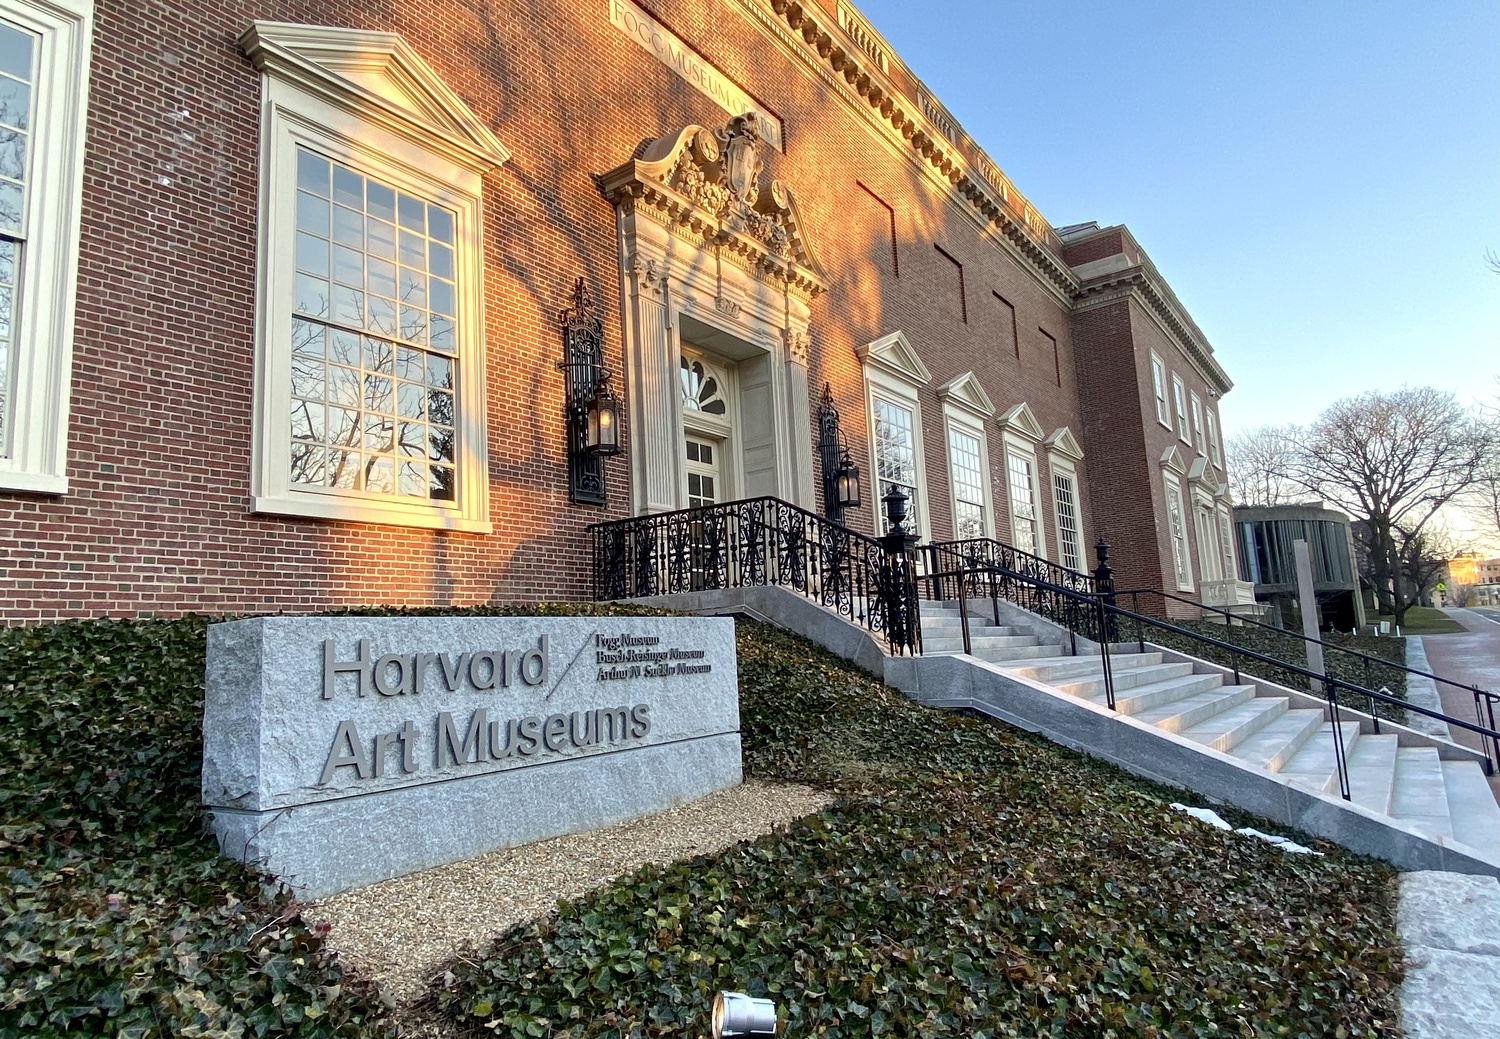 The Harvard Art Museums reopened in early September after shuttering in March 2020 due to Covid-19.